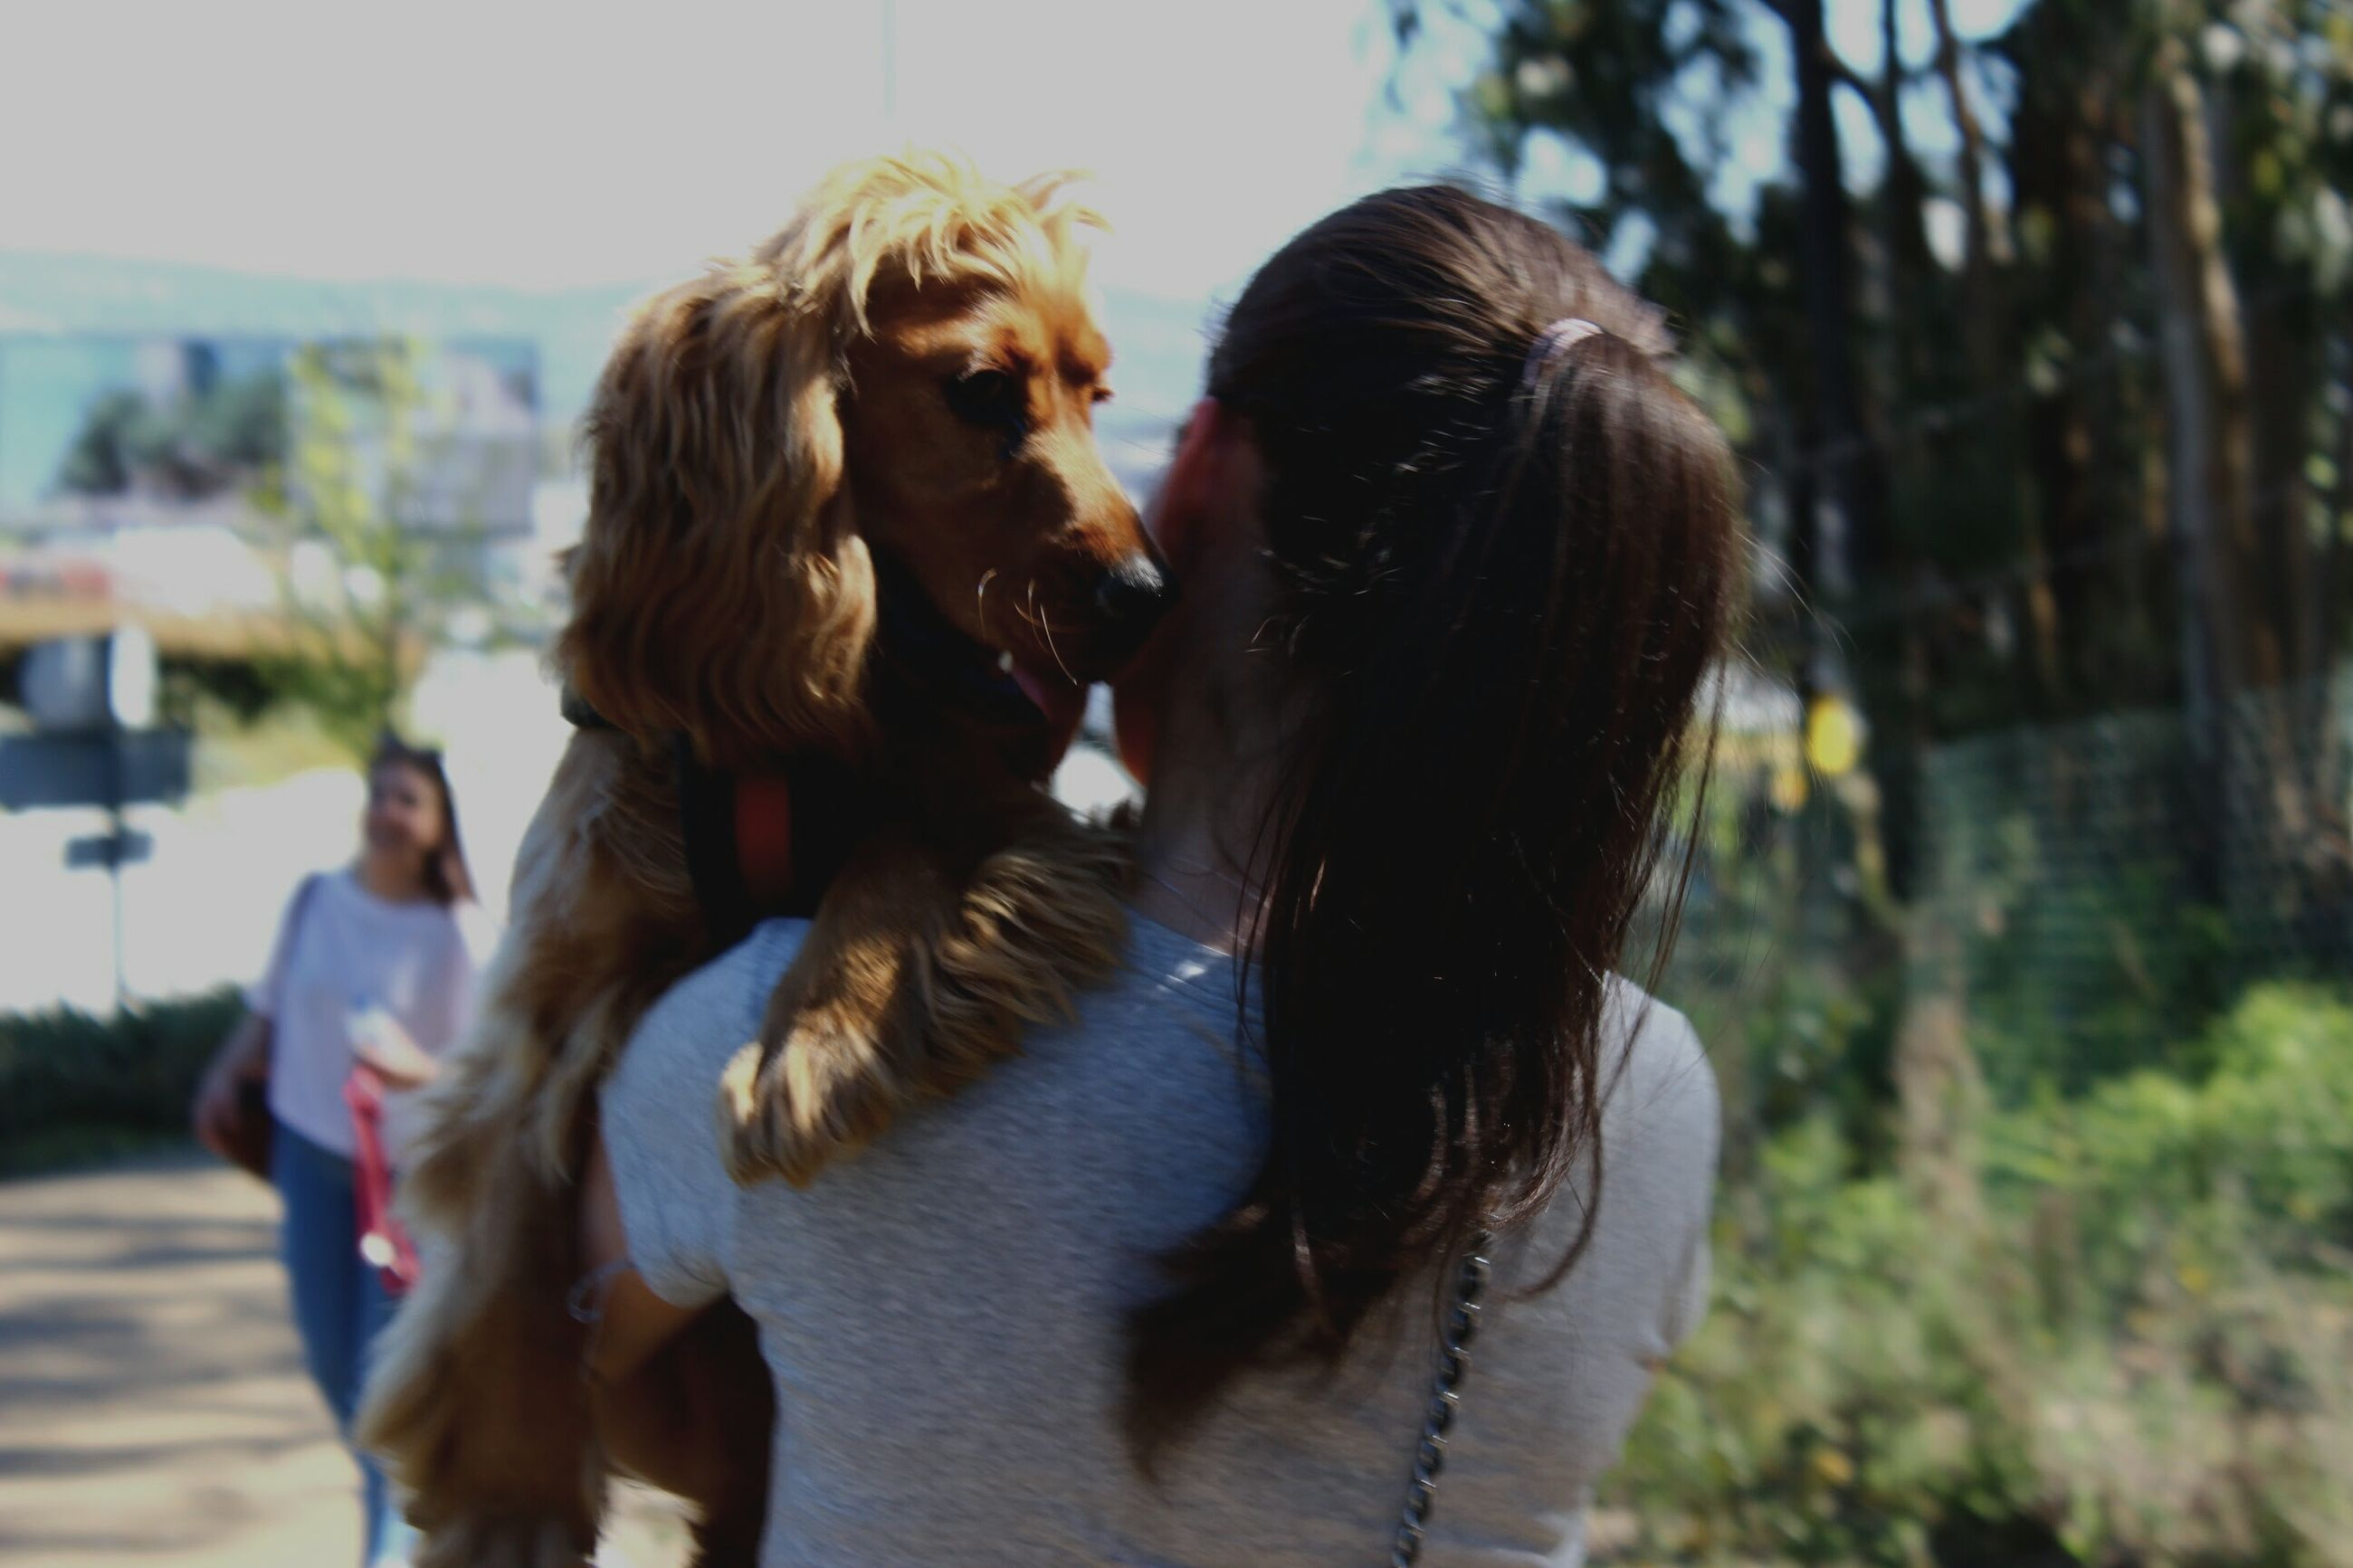 domestic animals, focus on foreground, mammal, lifestyles, leisure activity, long hair, outdoors, day, close-up, animal hair, selective focus, nature, casual clothing, sky